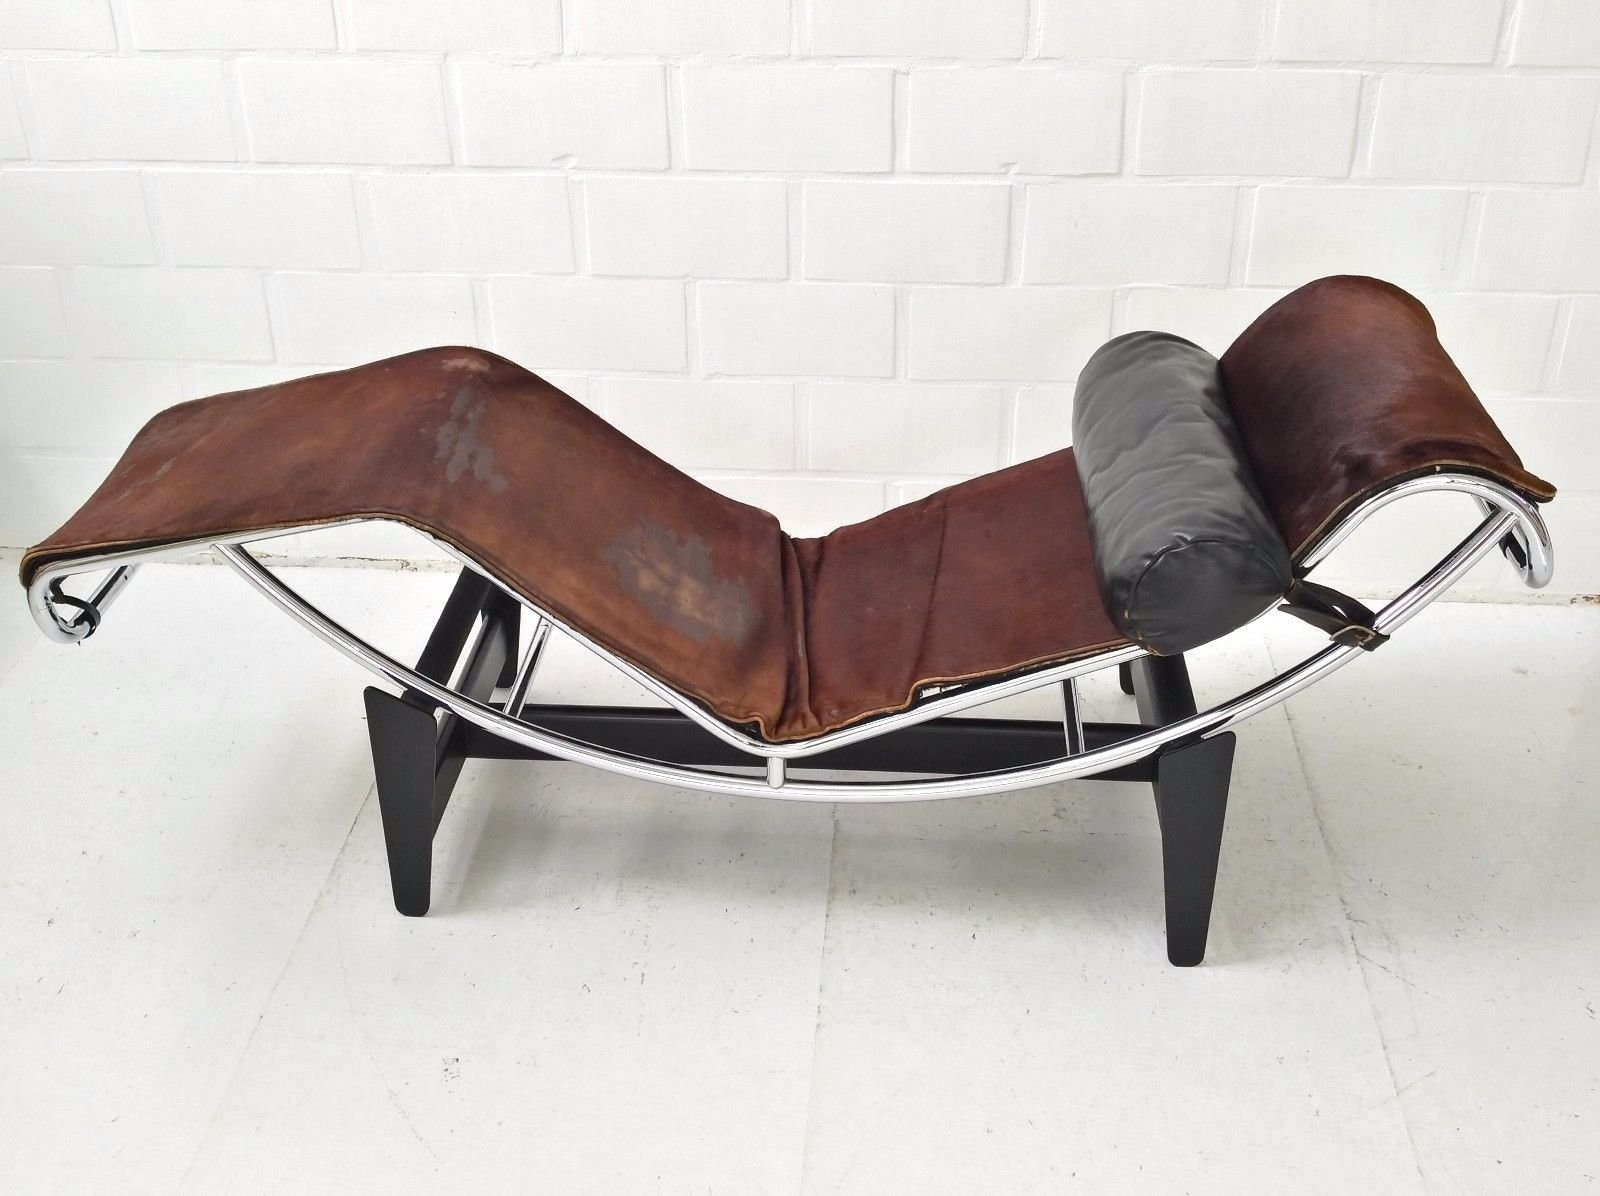 Lc4 chaise longue by le corbusier charlotte perriand for Chaise longue france